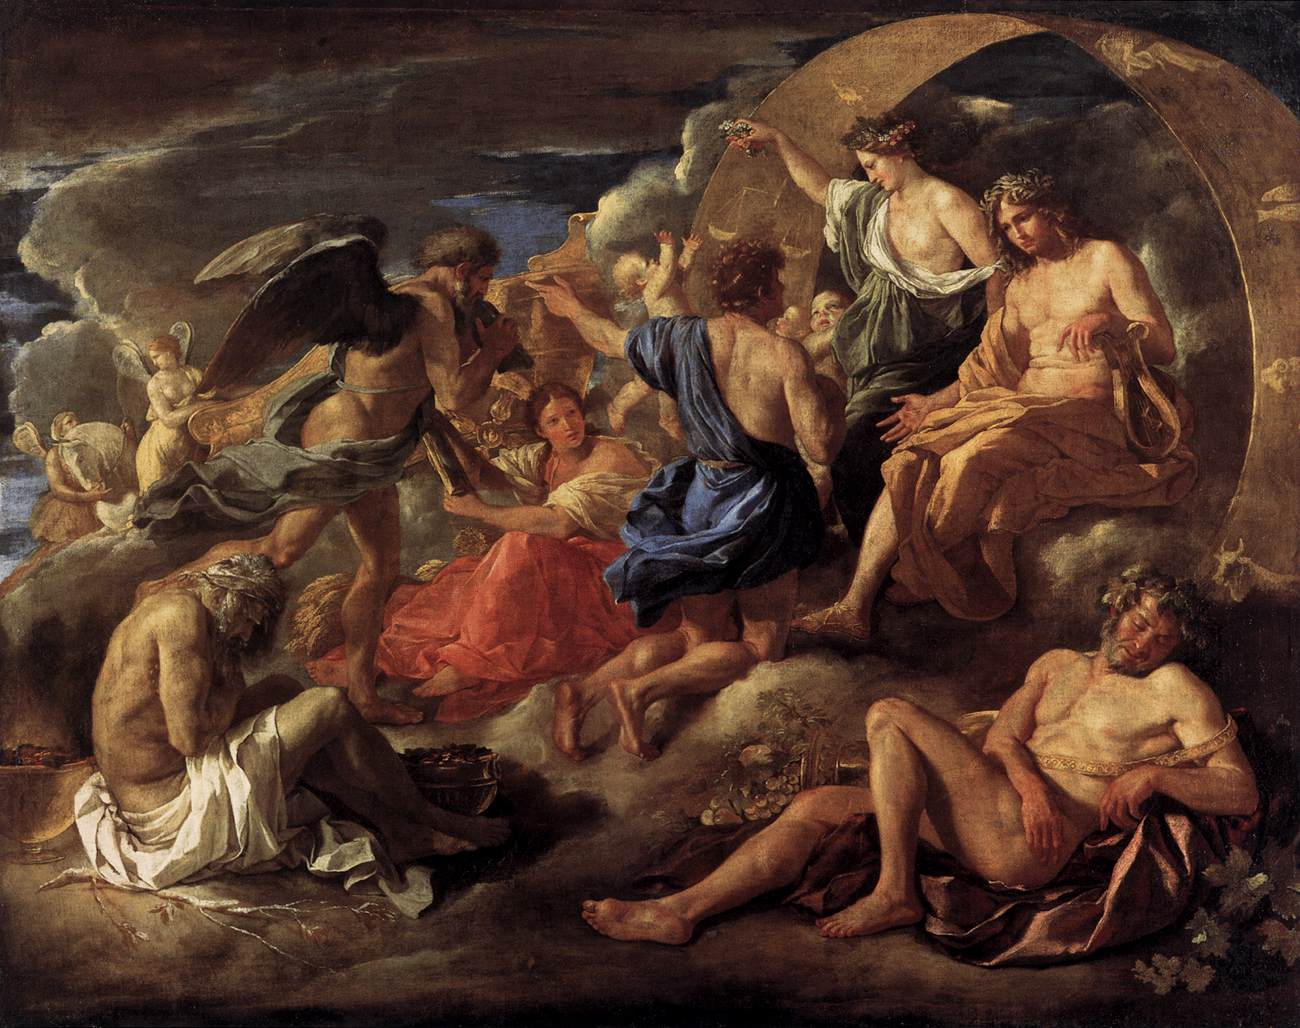 Nicolas Poussin - Page 2 Nicolas_Poussin_-_Helios_and_Phaeton_with_Saturn_and_the_Four_Seasons